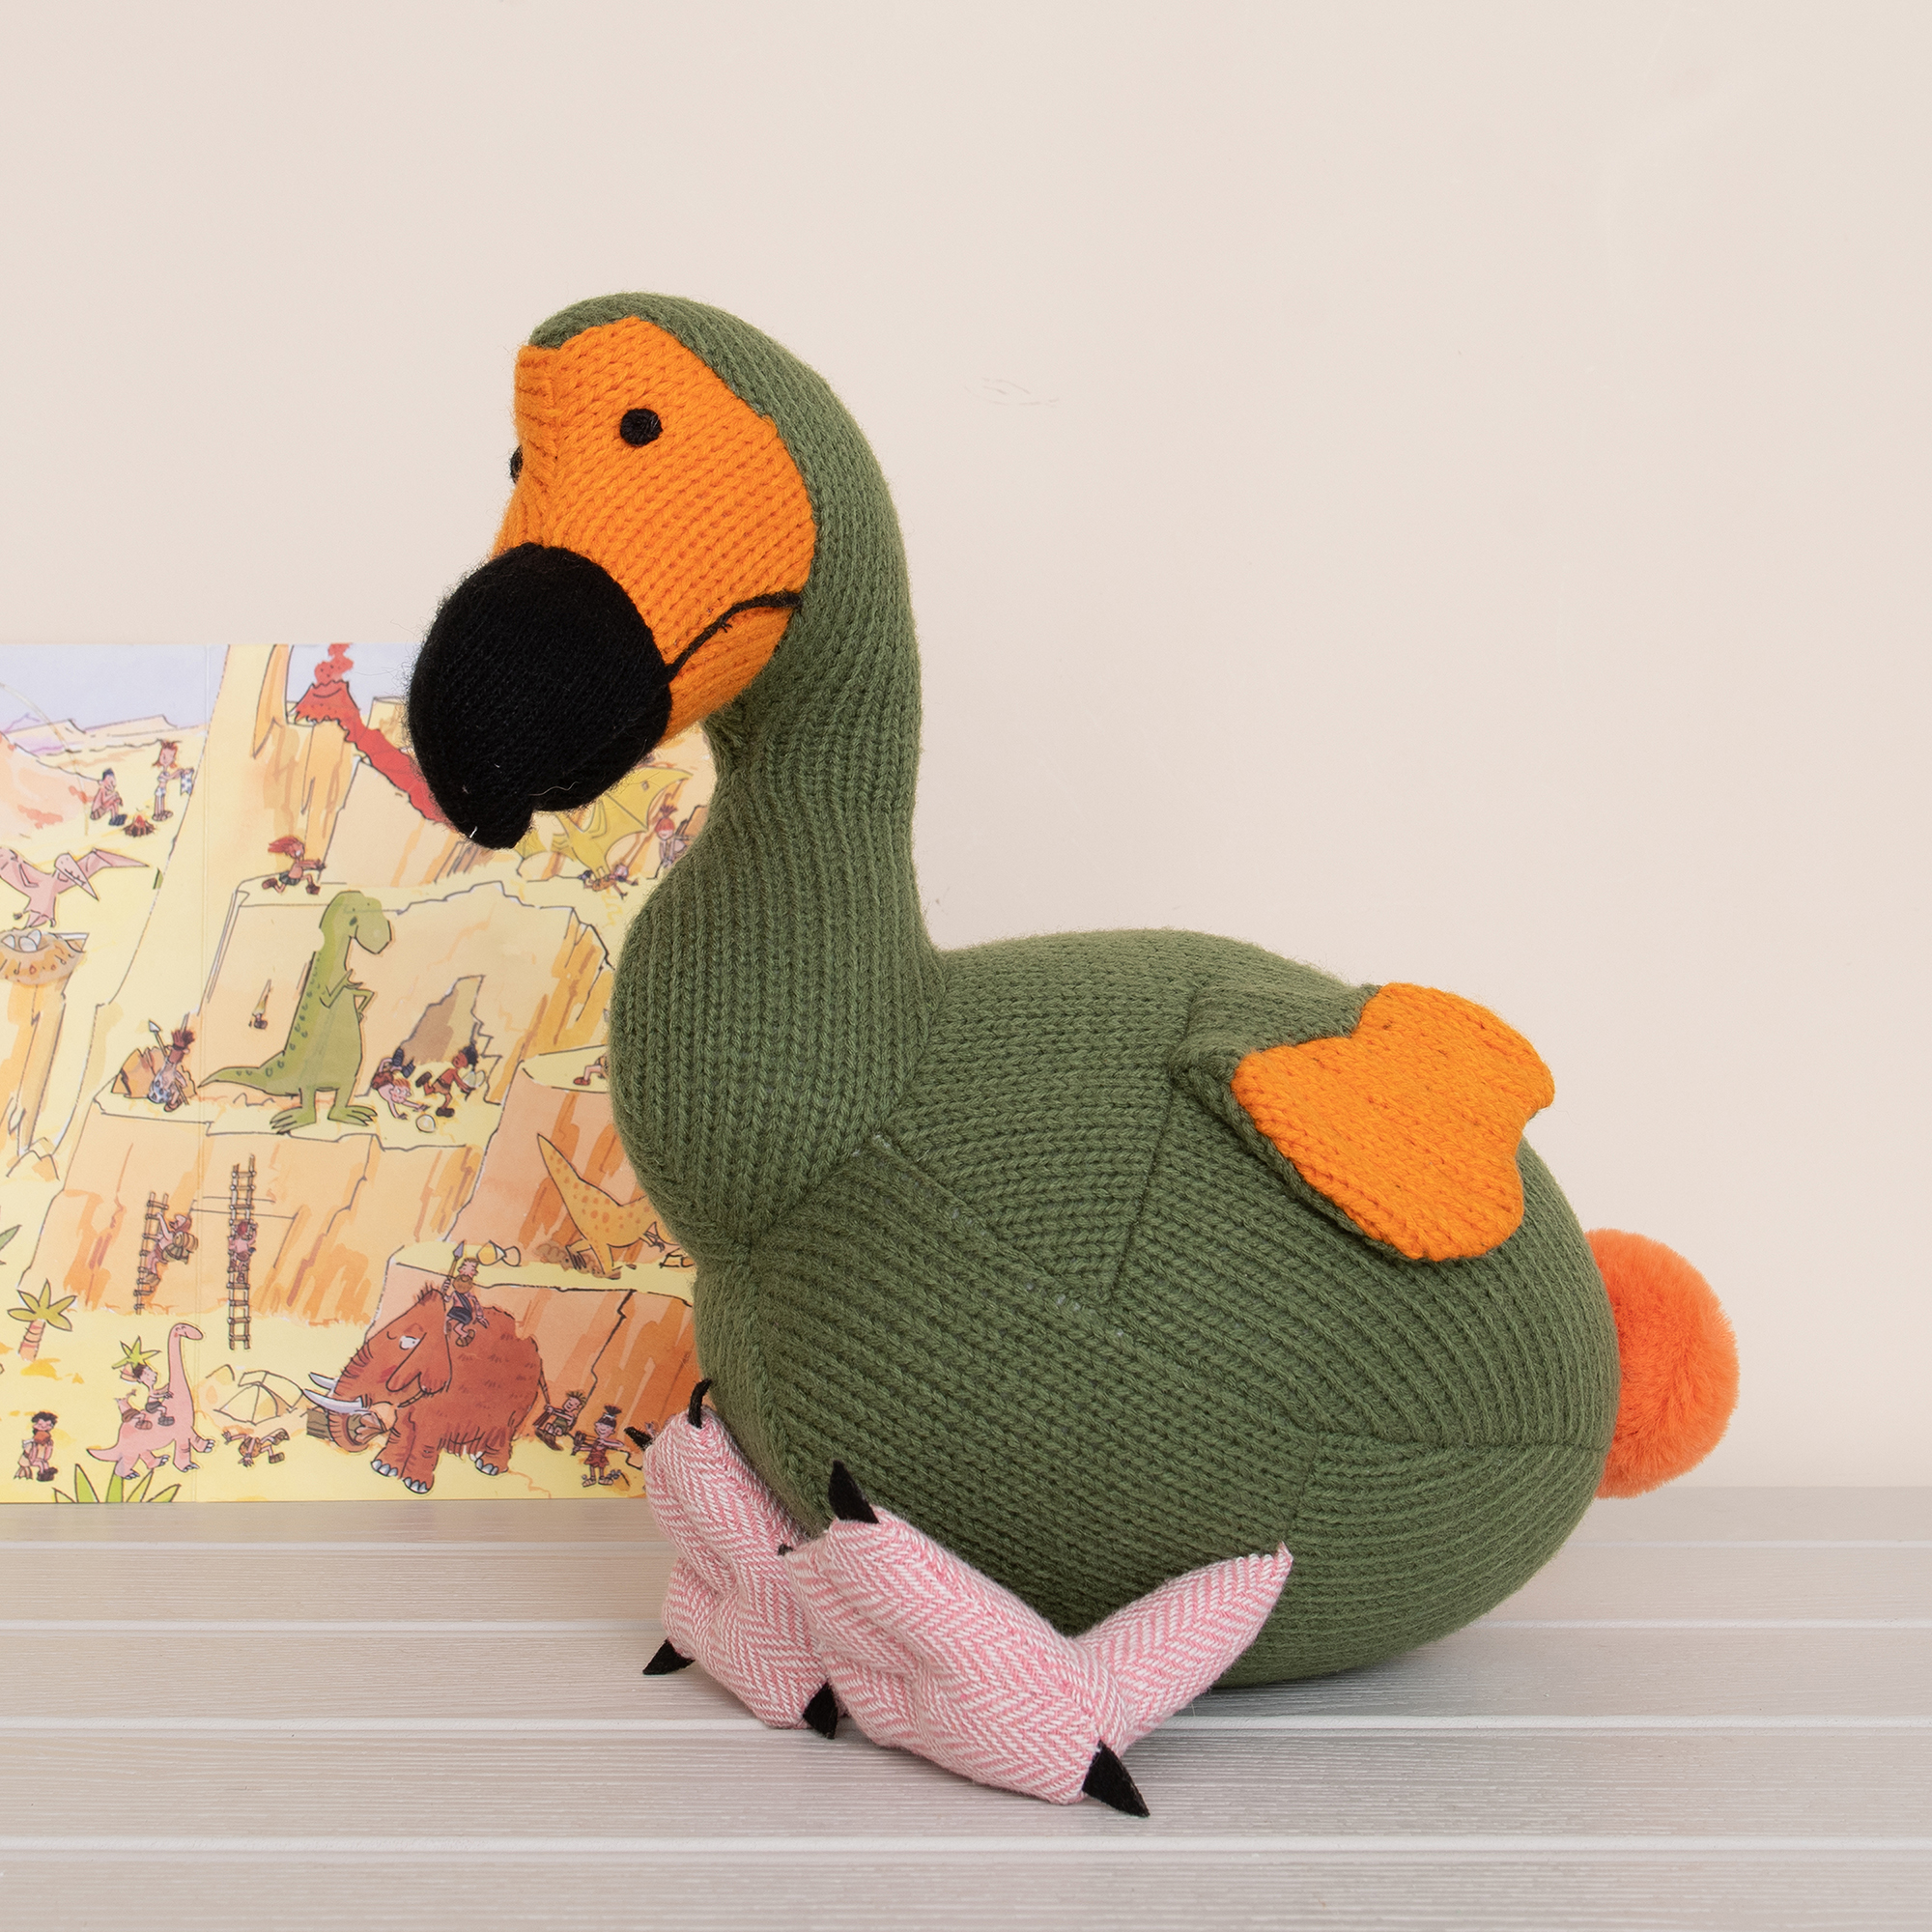 Best Years - Knitted Medium Toy - Dodo - moss green